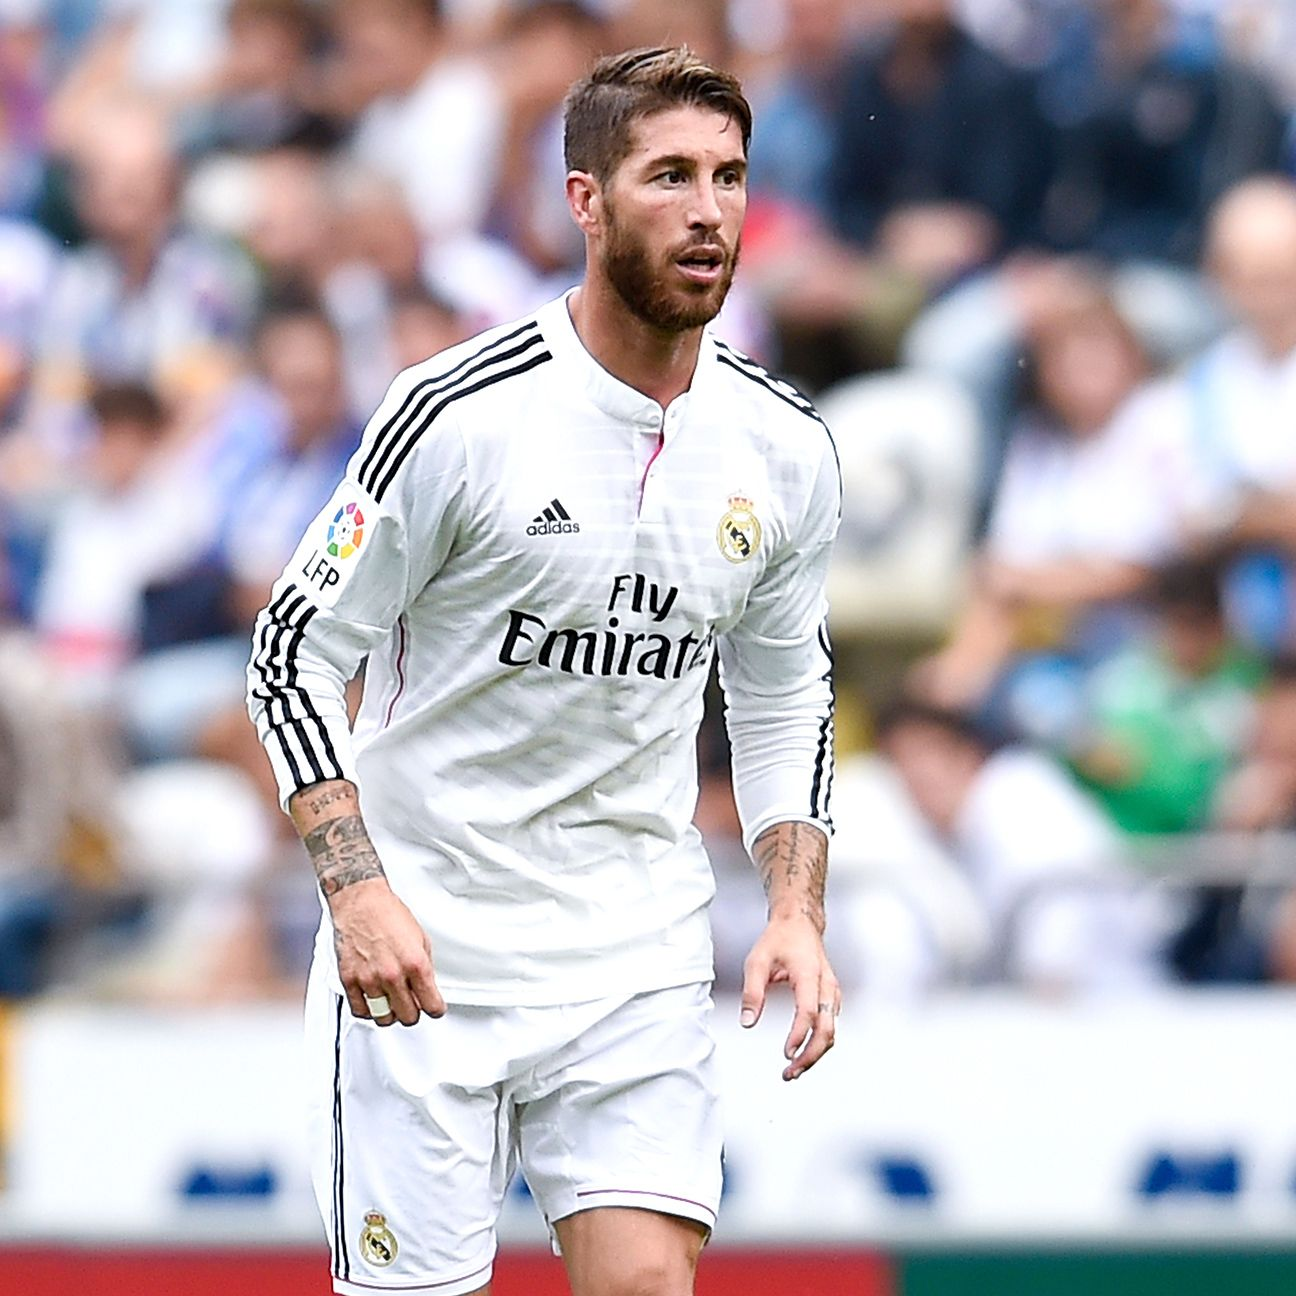 It remains to be seen whether Sergio Ramos will be fully fit for this month's <i>Clasico</i>.